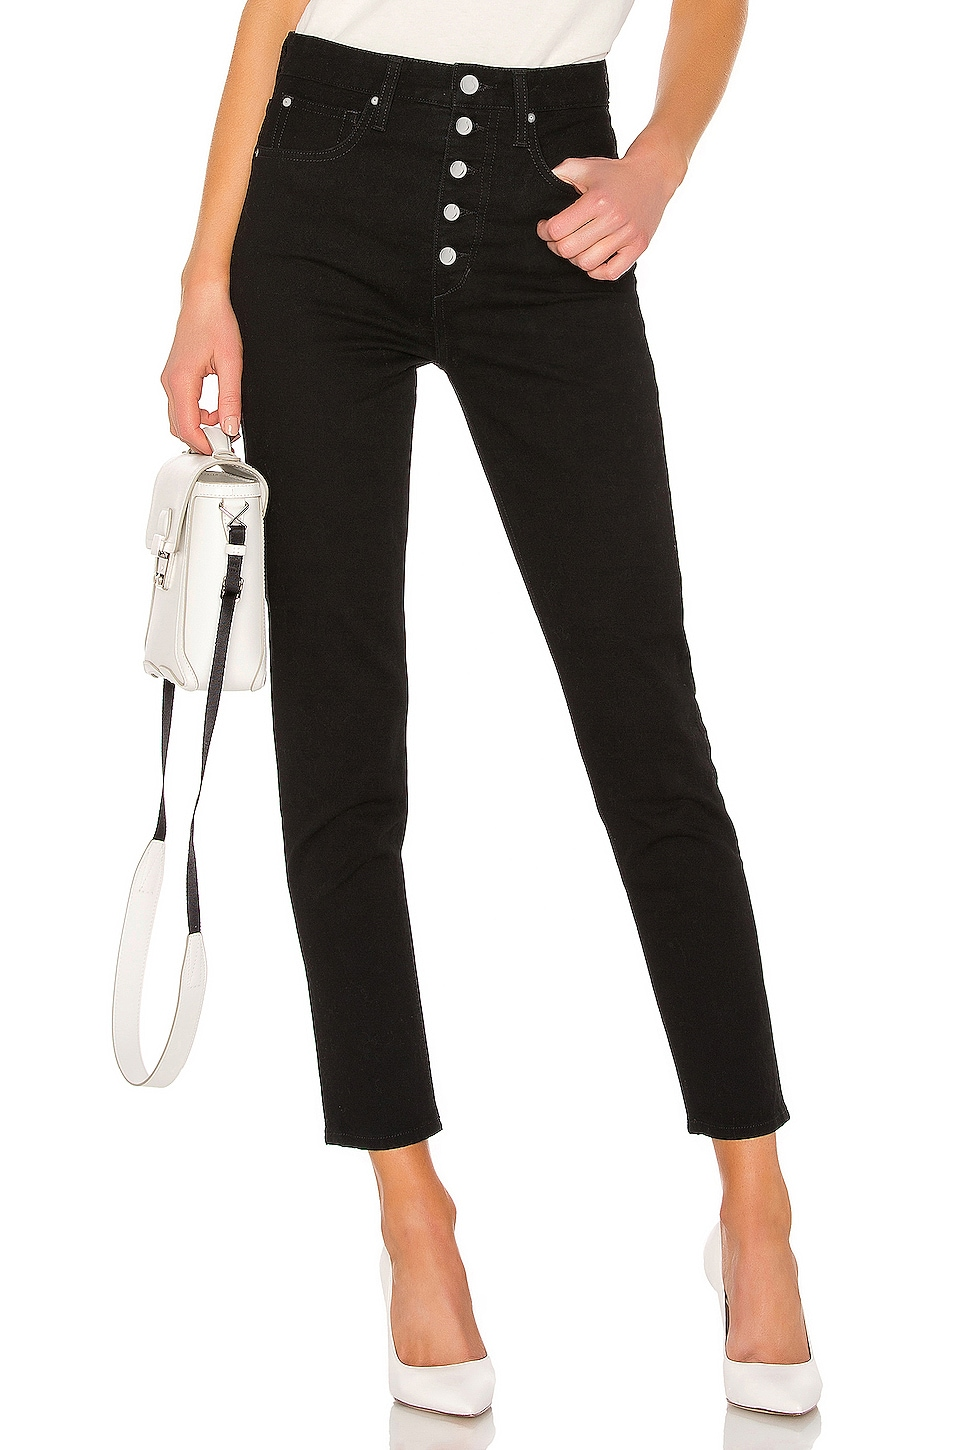 Joe's Jeans The Danielle High Rise Vintage in Black